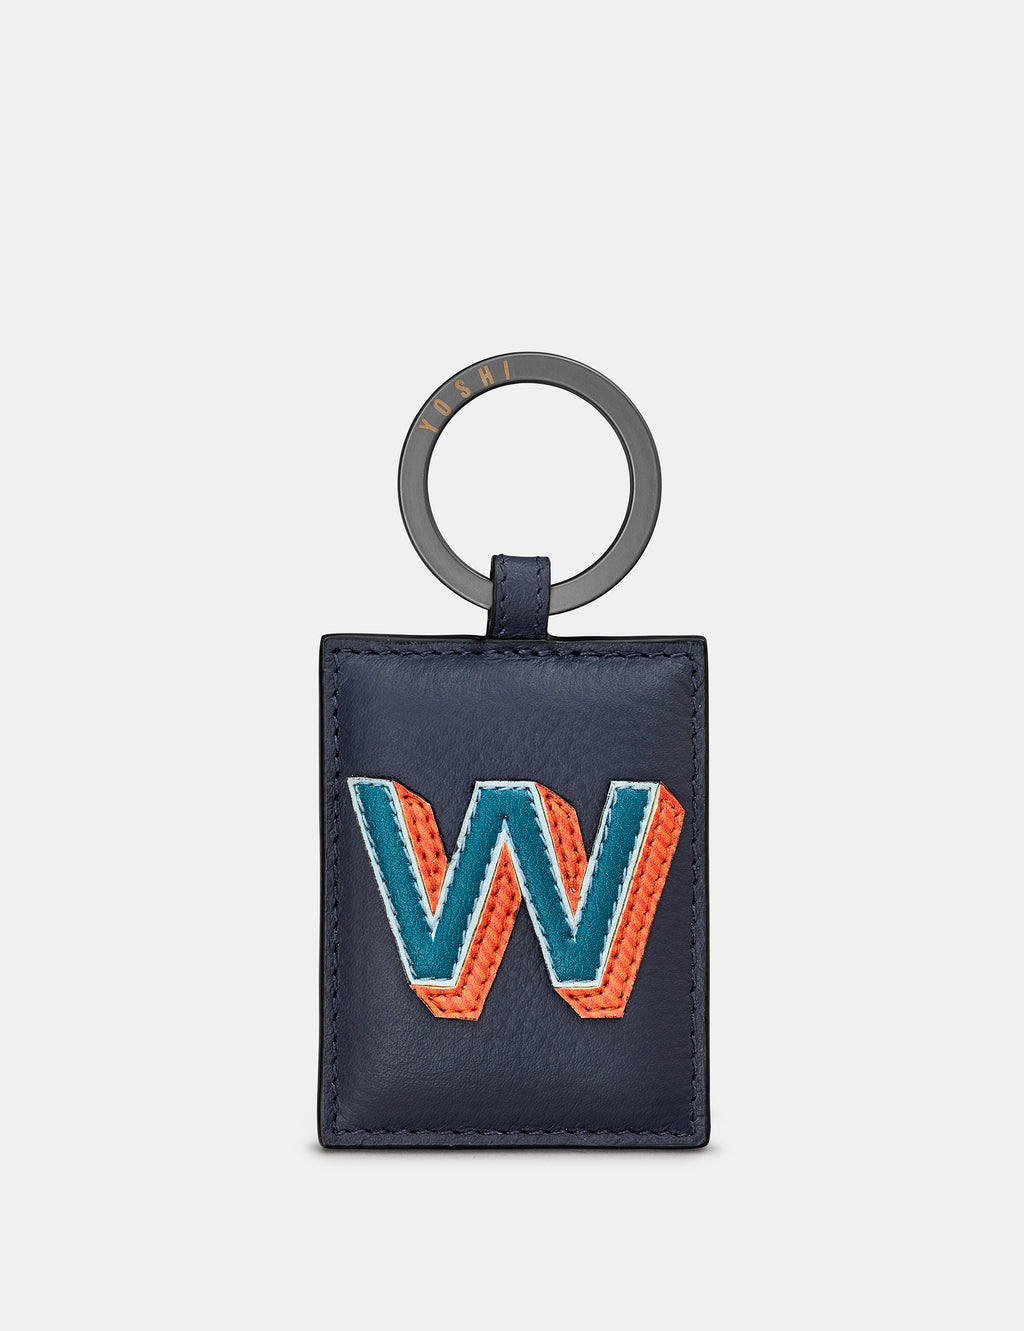 W Initial Navy Leather Keyring